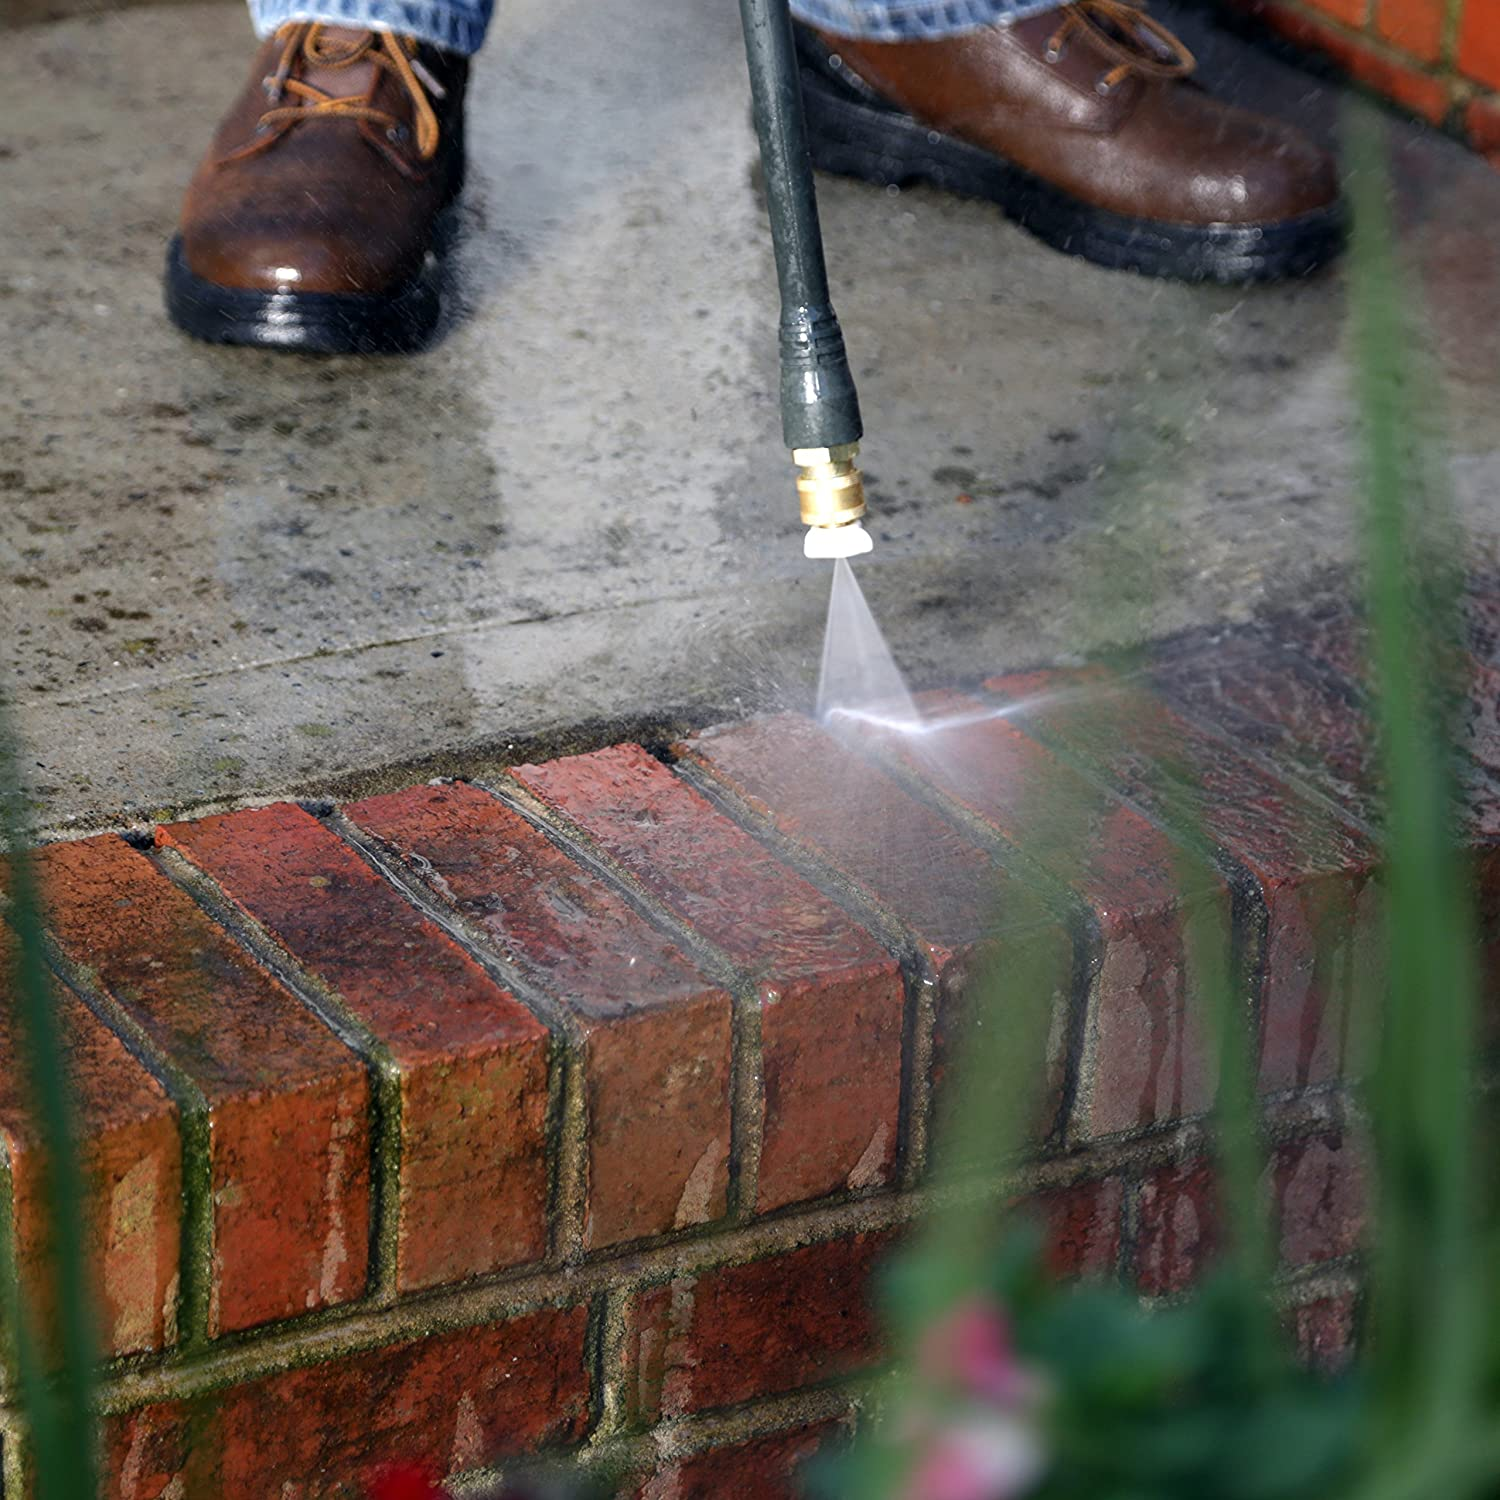 The Best Electric Pressure Washers For Your Garden: Reviews & Buying Guide 18